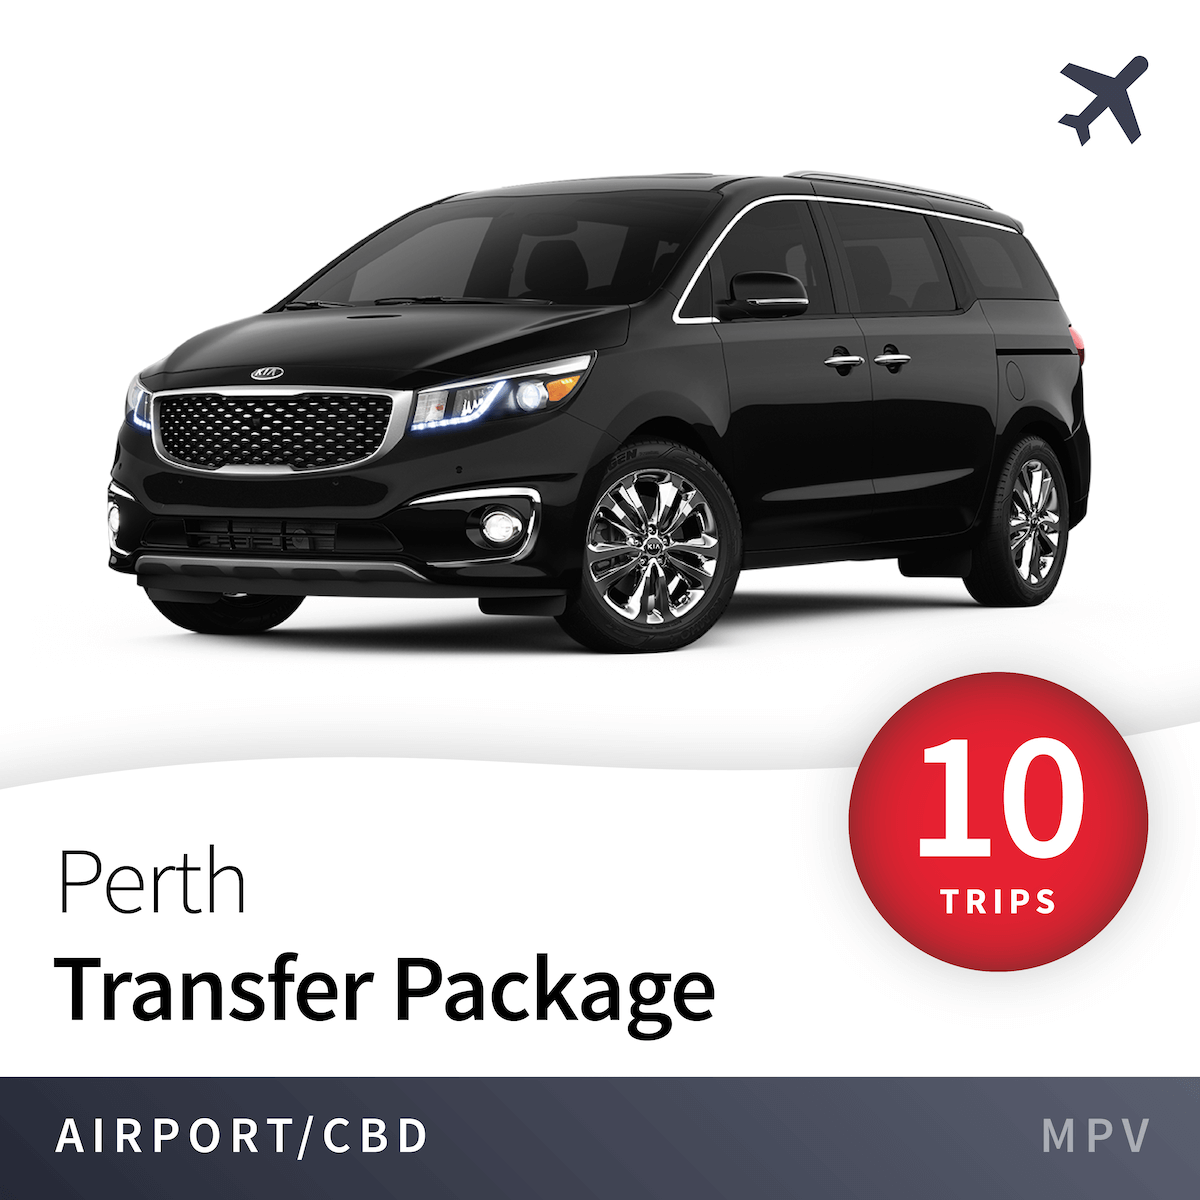 Perth Airport Transfer Package - MPV (10 Trips) 6